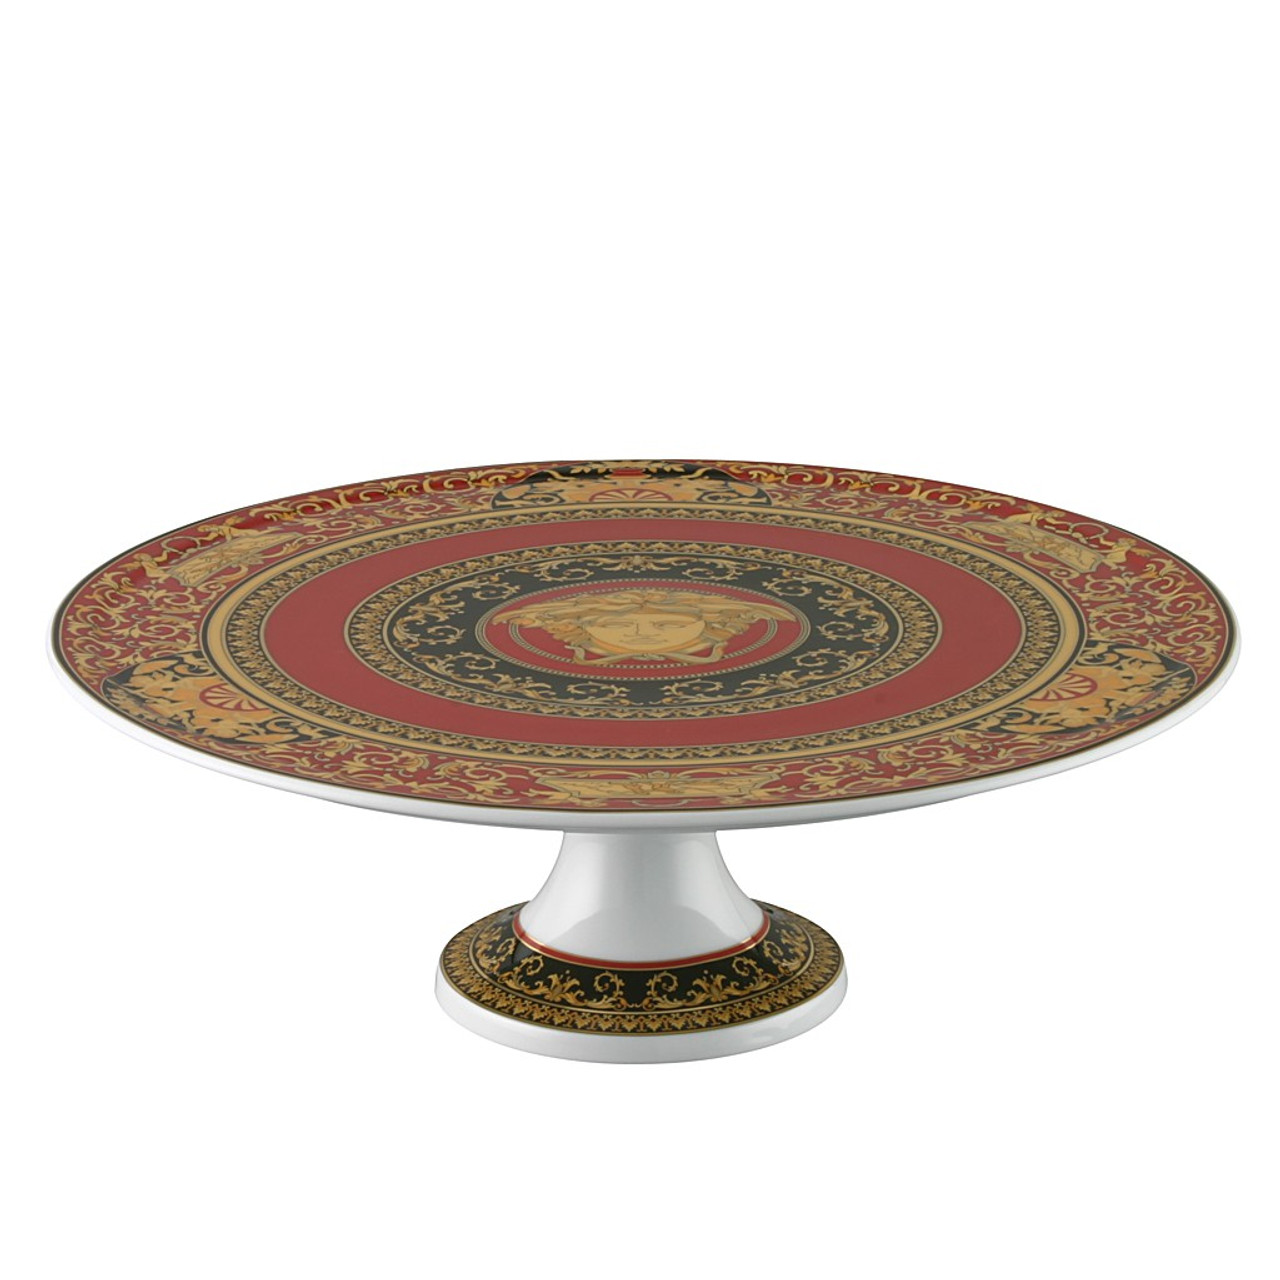 Footed Cake Plate Porcelain 13 inch | Versace Medusa Red  sc 1 st  Rosenthal & Footed Cake Plate Porcelain 13 inch | Medusa Red| Rosenthal Shop